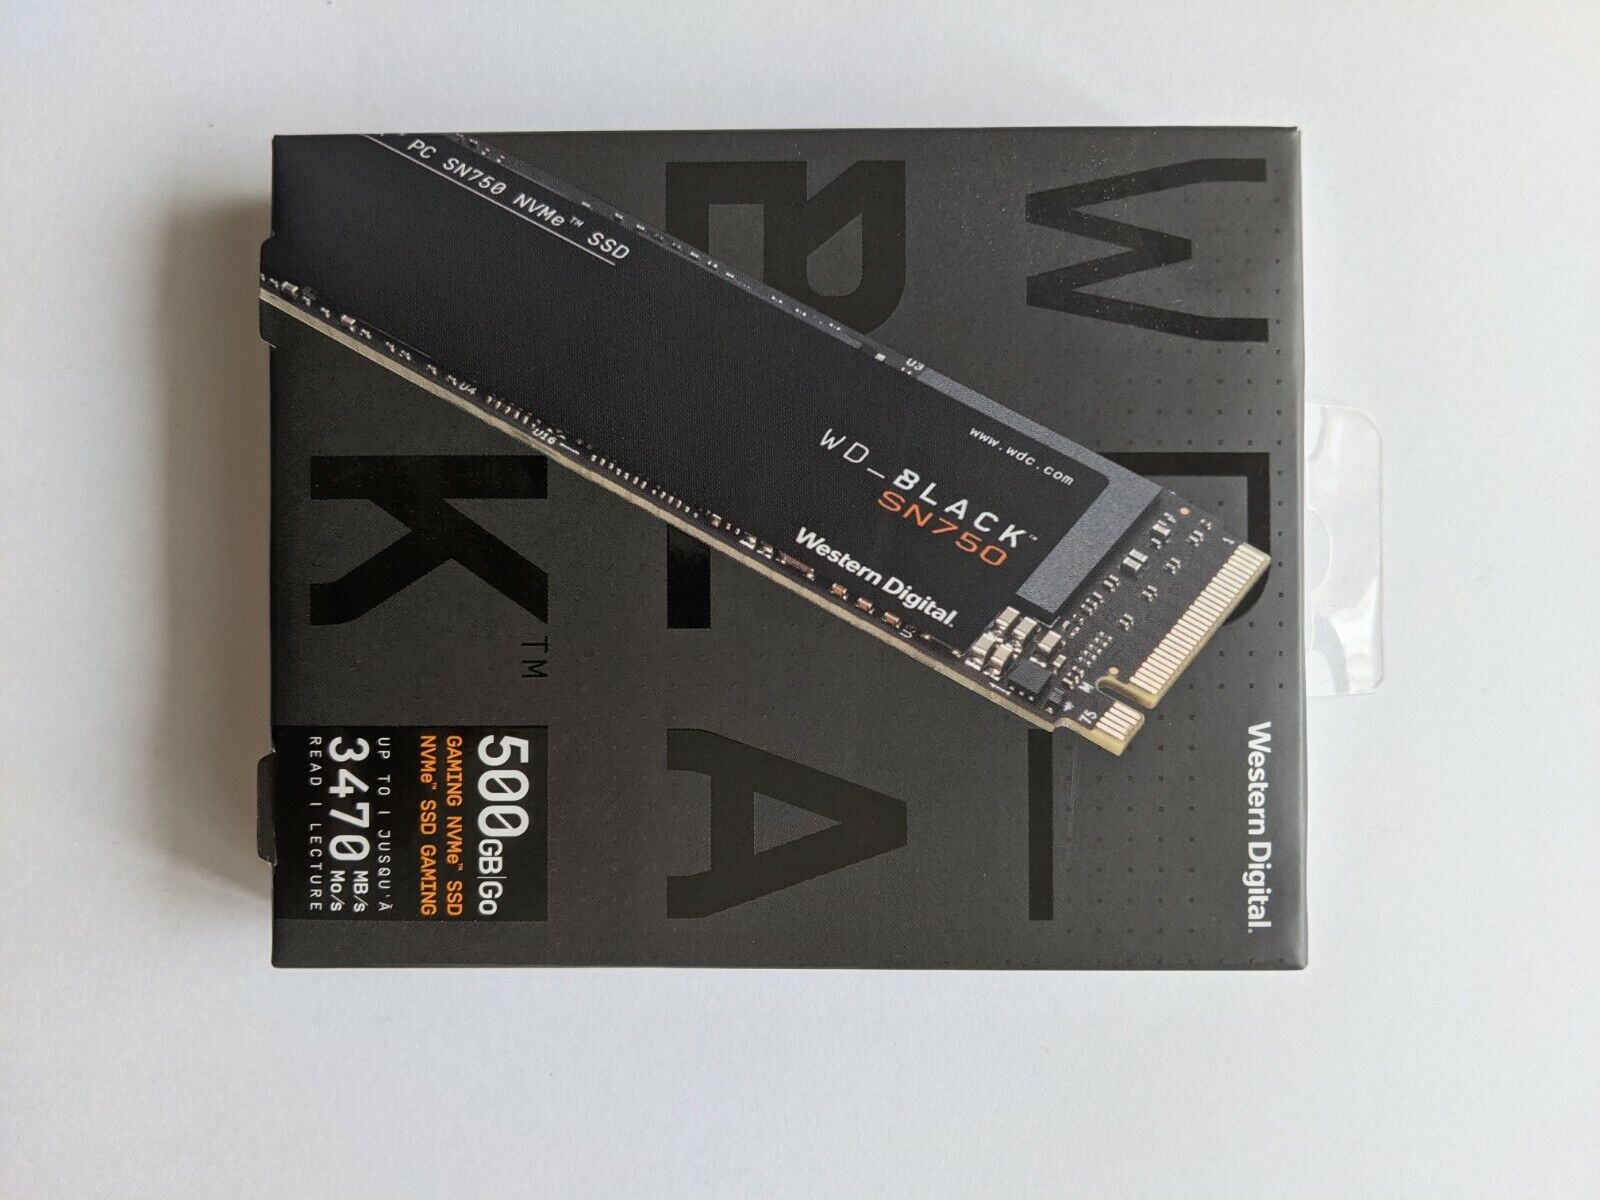 WD - WD_BLACK SN750 NVMe 500gb Internal PCI Express 3.0 x4 Solid State Drive. Buy it now for 59.99